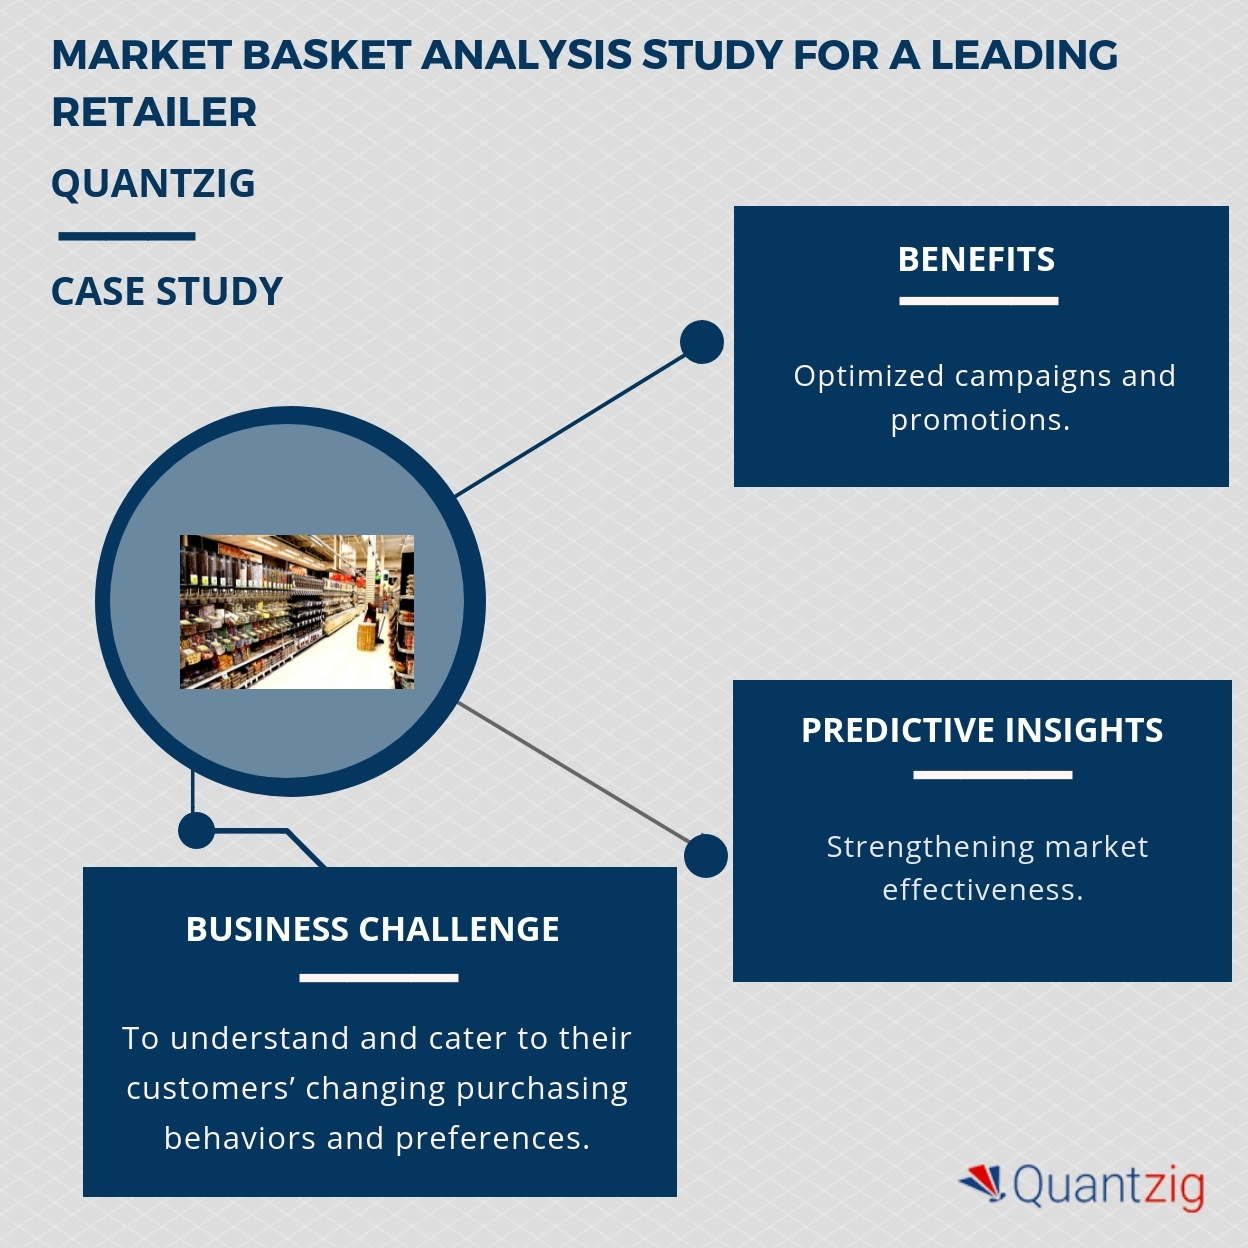 Market basket analysis study for a leading retailer